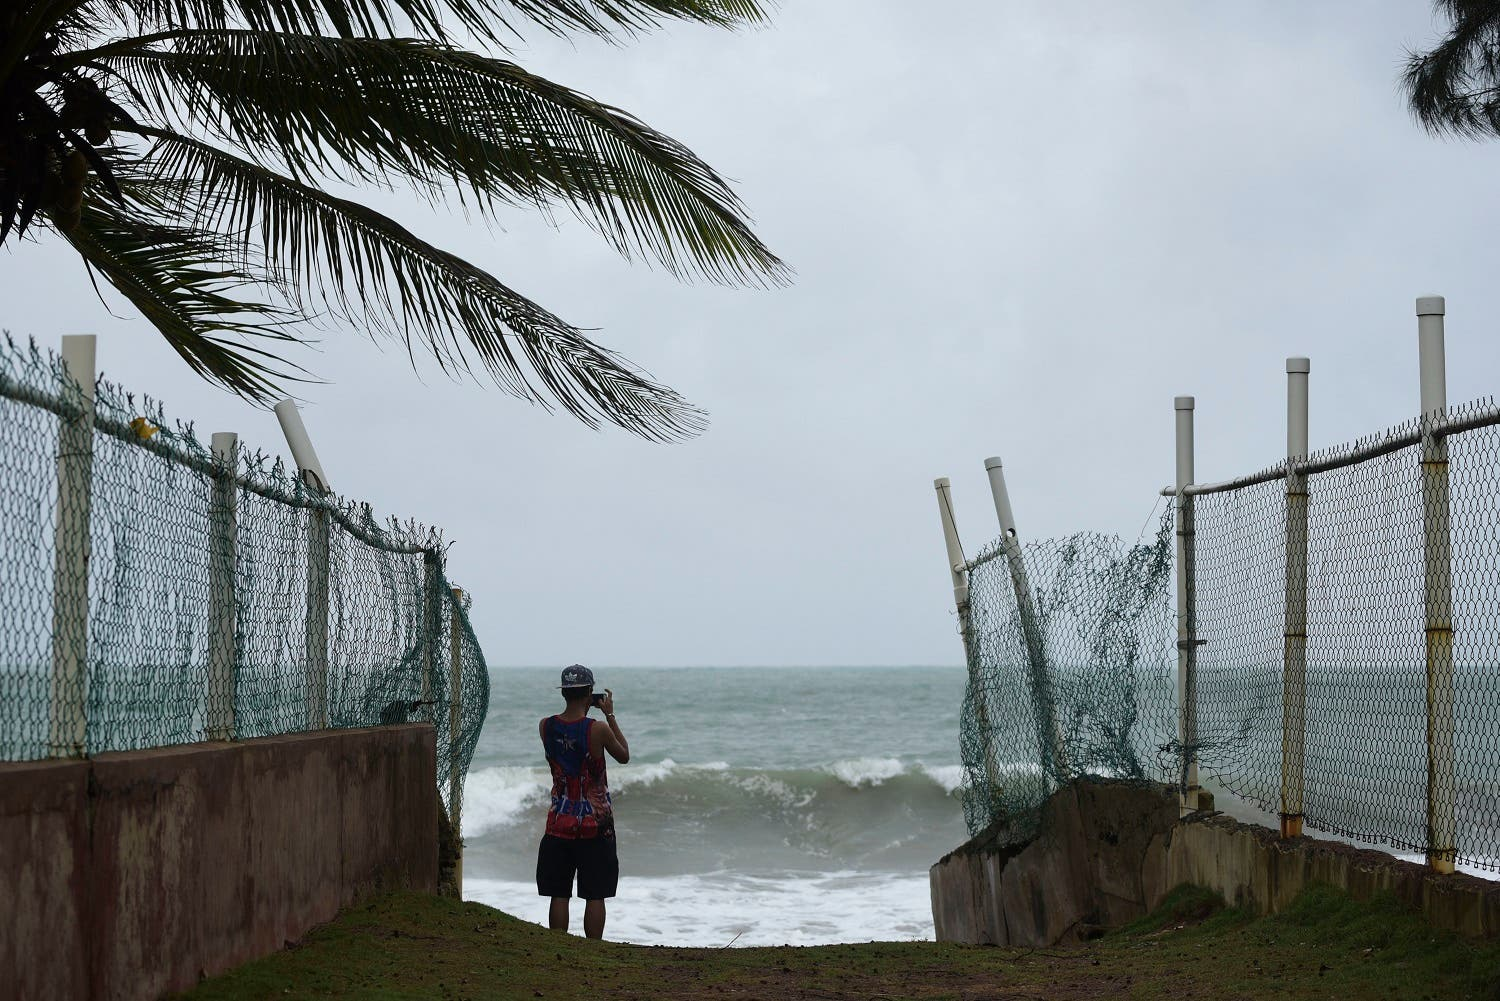 A man photographs the ocean before the arrival of Hurricane Irma, in luquillo, Puerto Rico, on Sept. 6, 2017. (AP)